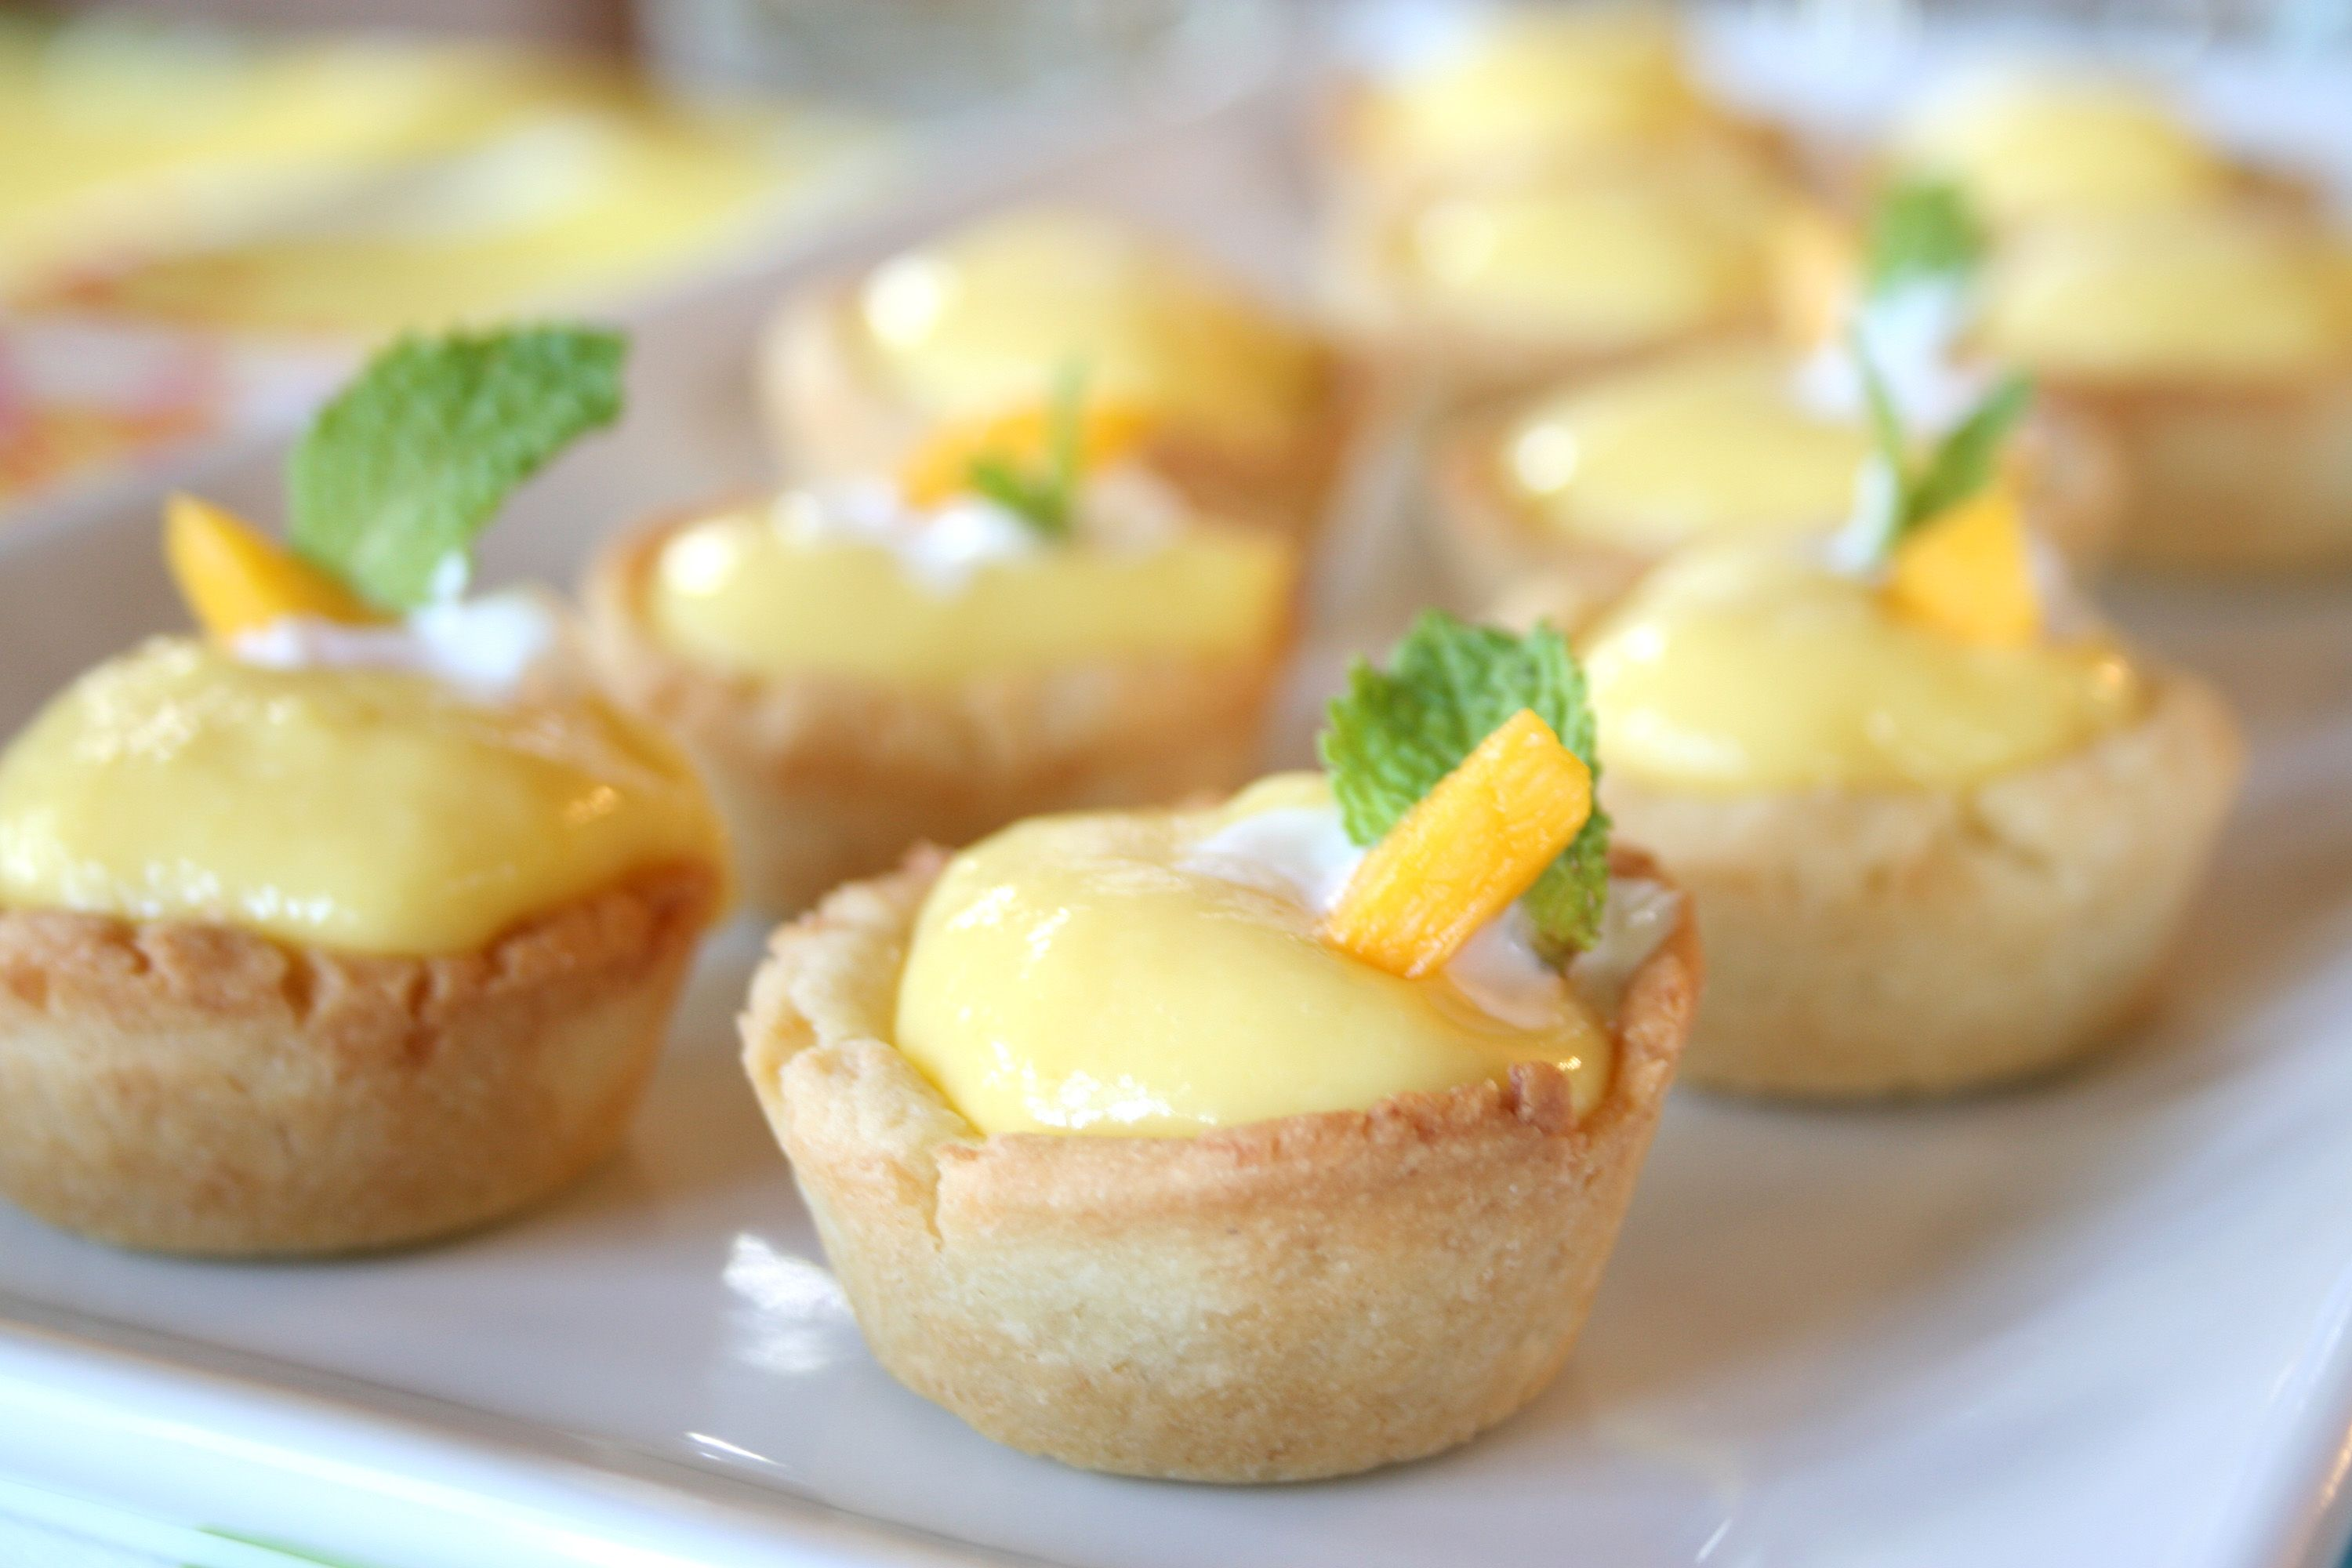 Coconut Shortbread Tartlets filled with Mango Curd | All About Food